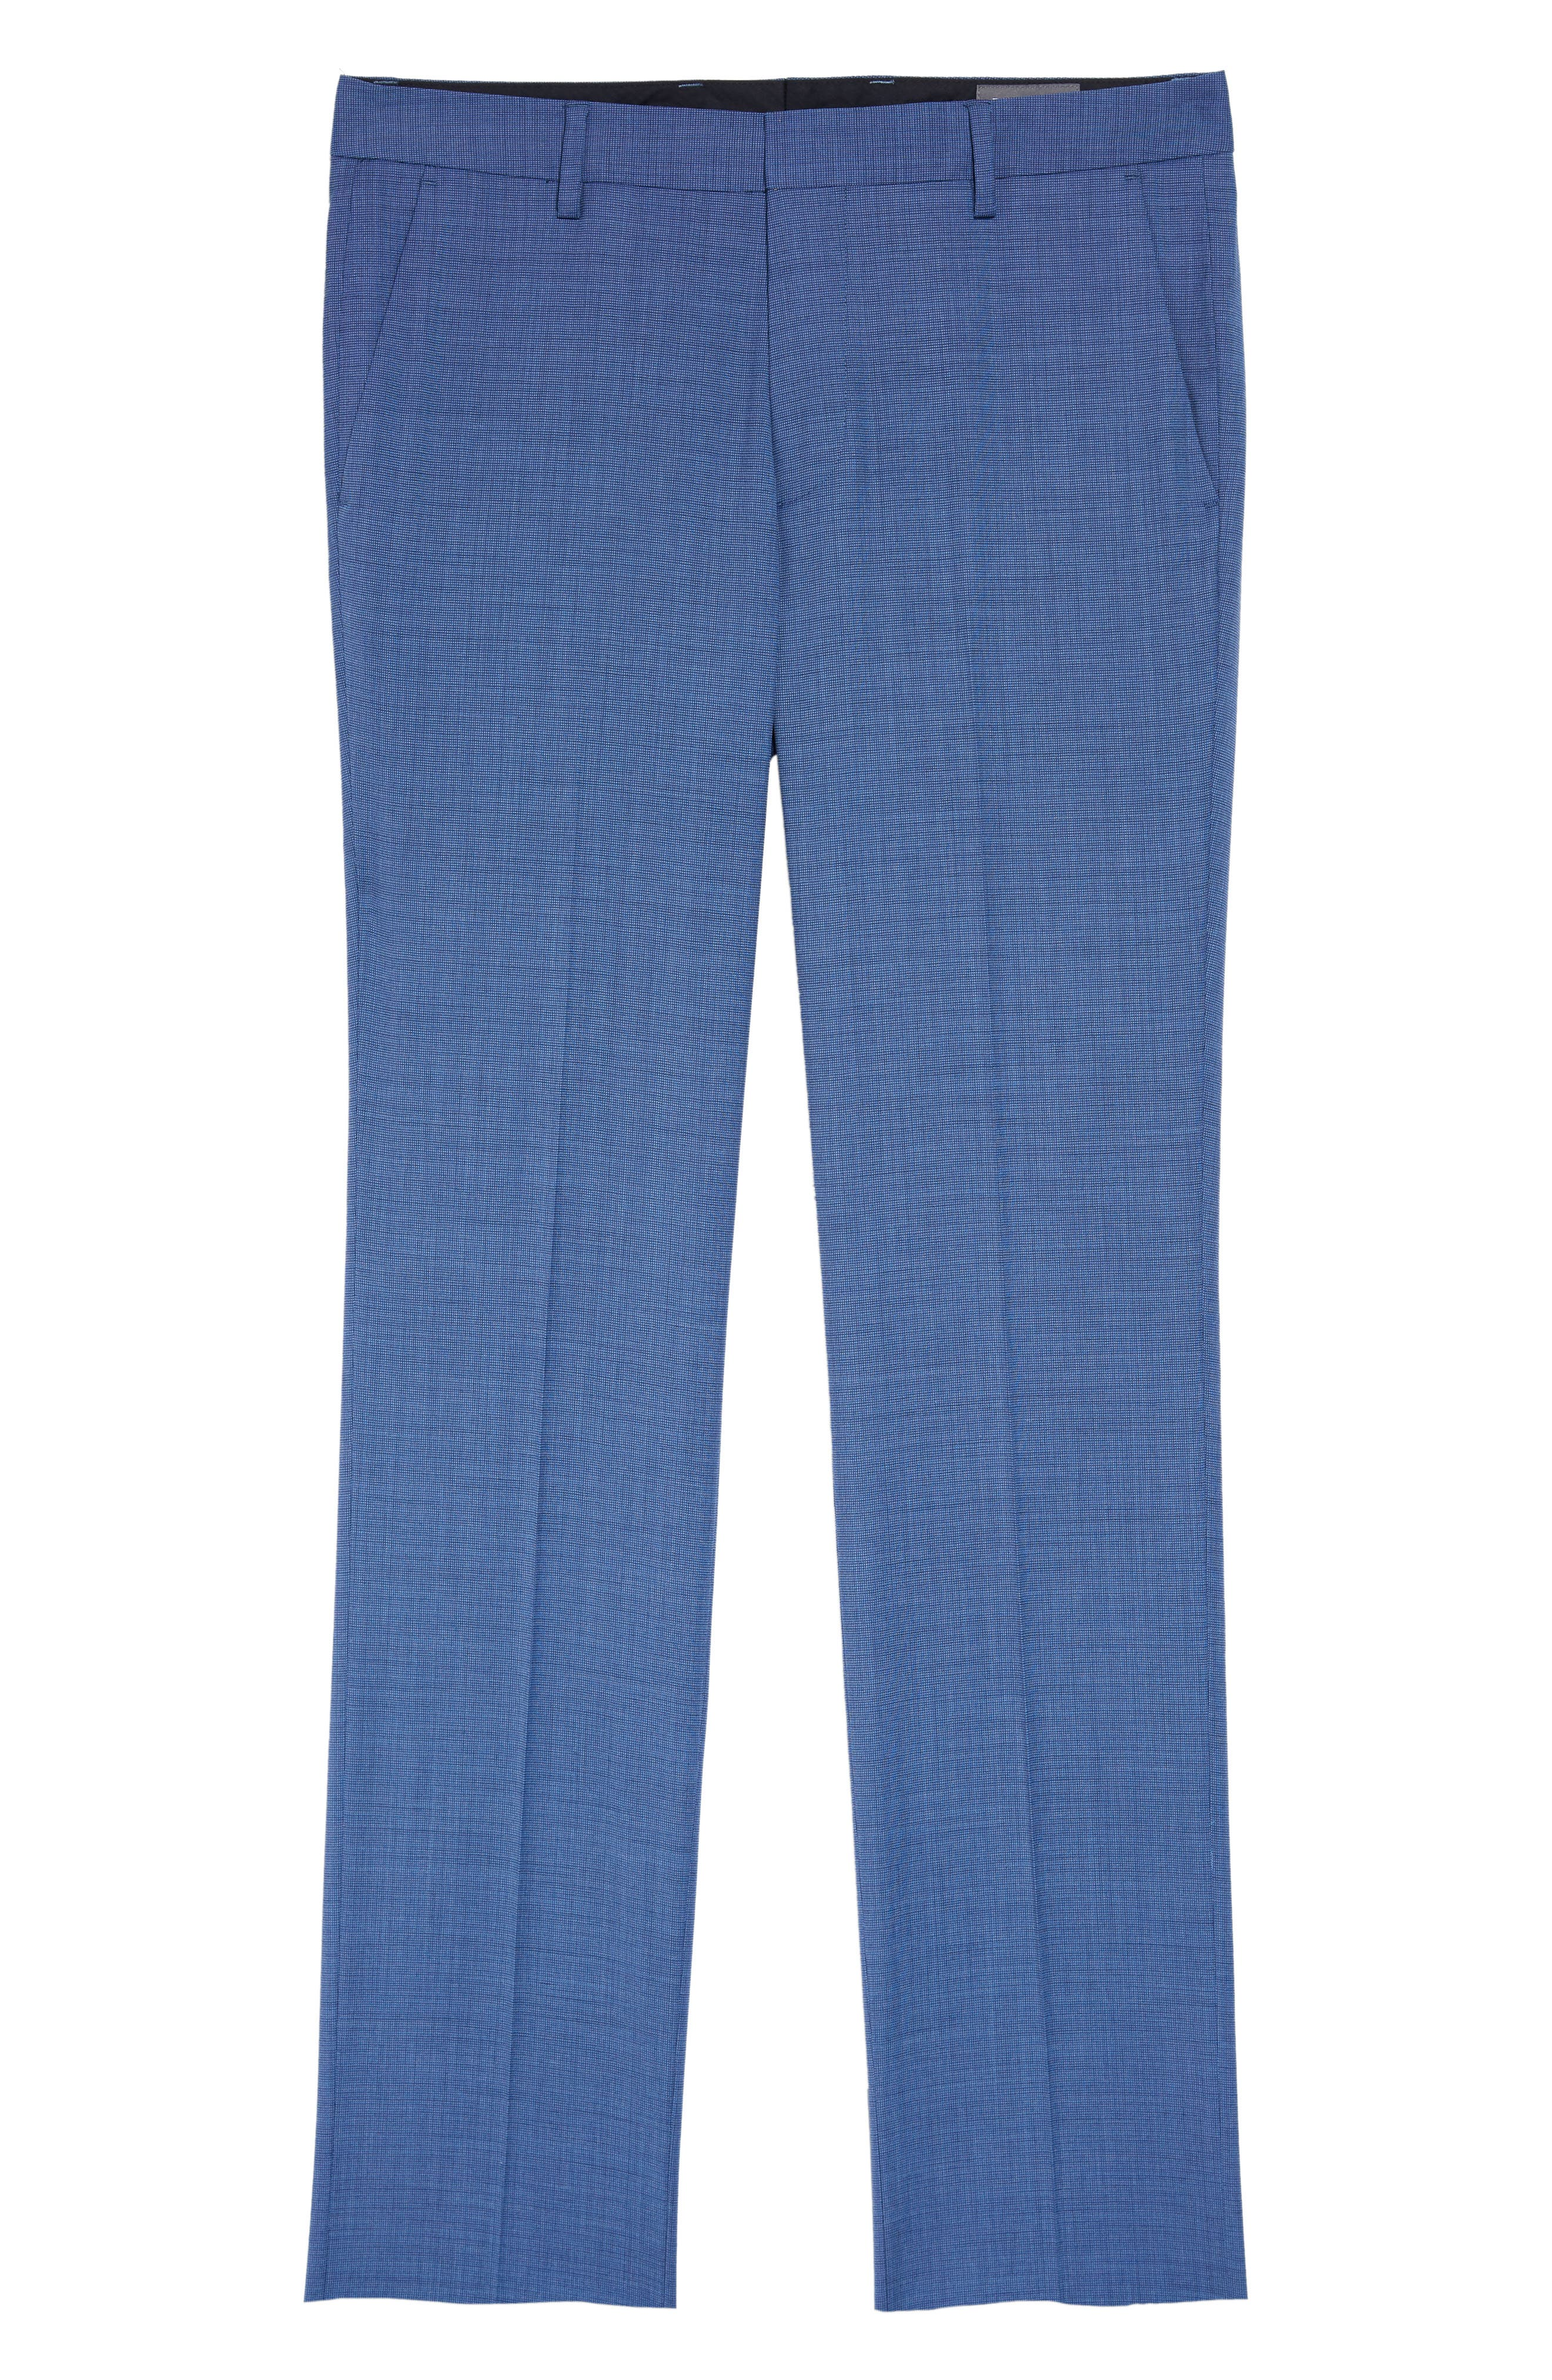 BONOBOS, Jetsetter Flat Front Solid Stretch Wool Trousers, Alternate thumbnail 3, color, BRIGHTER BLUE